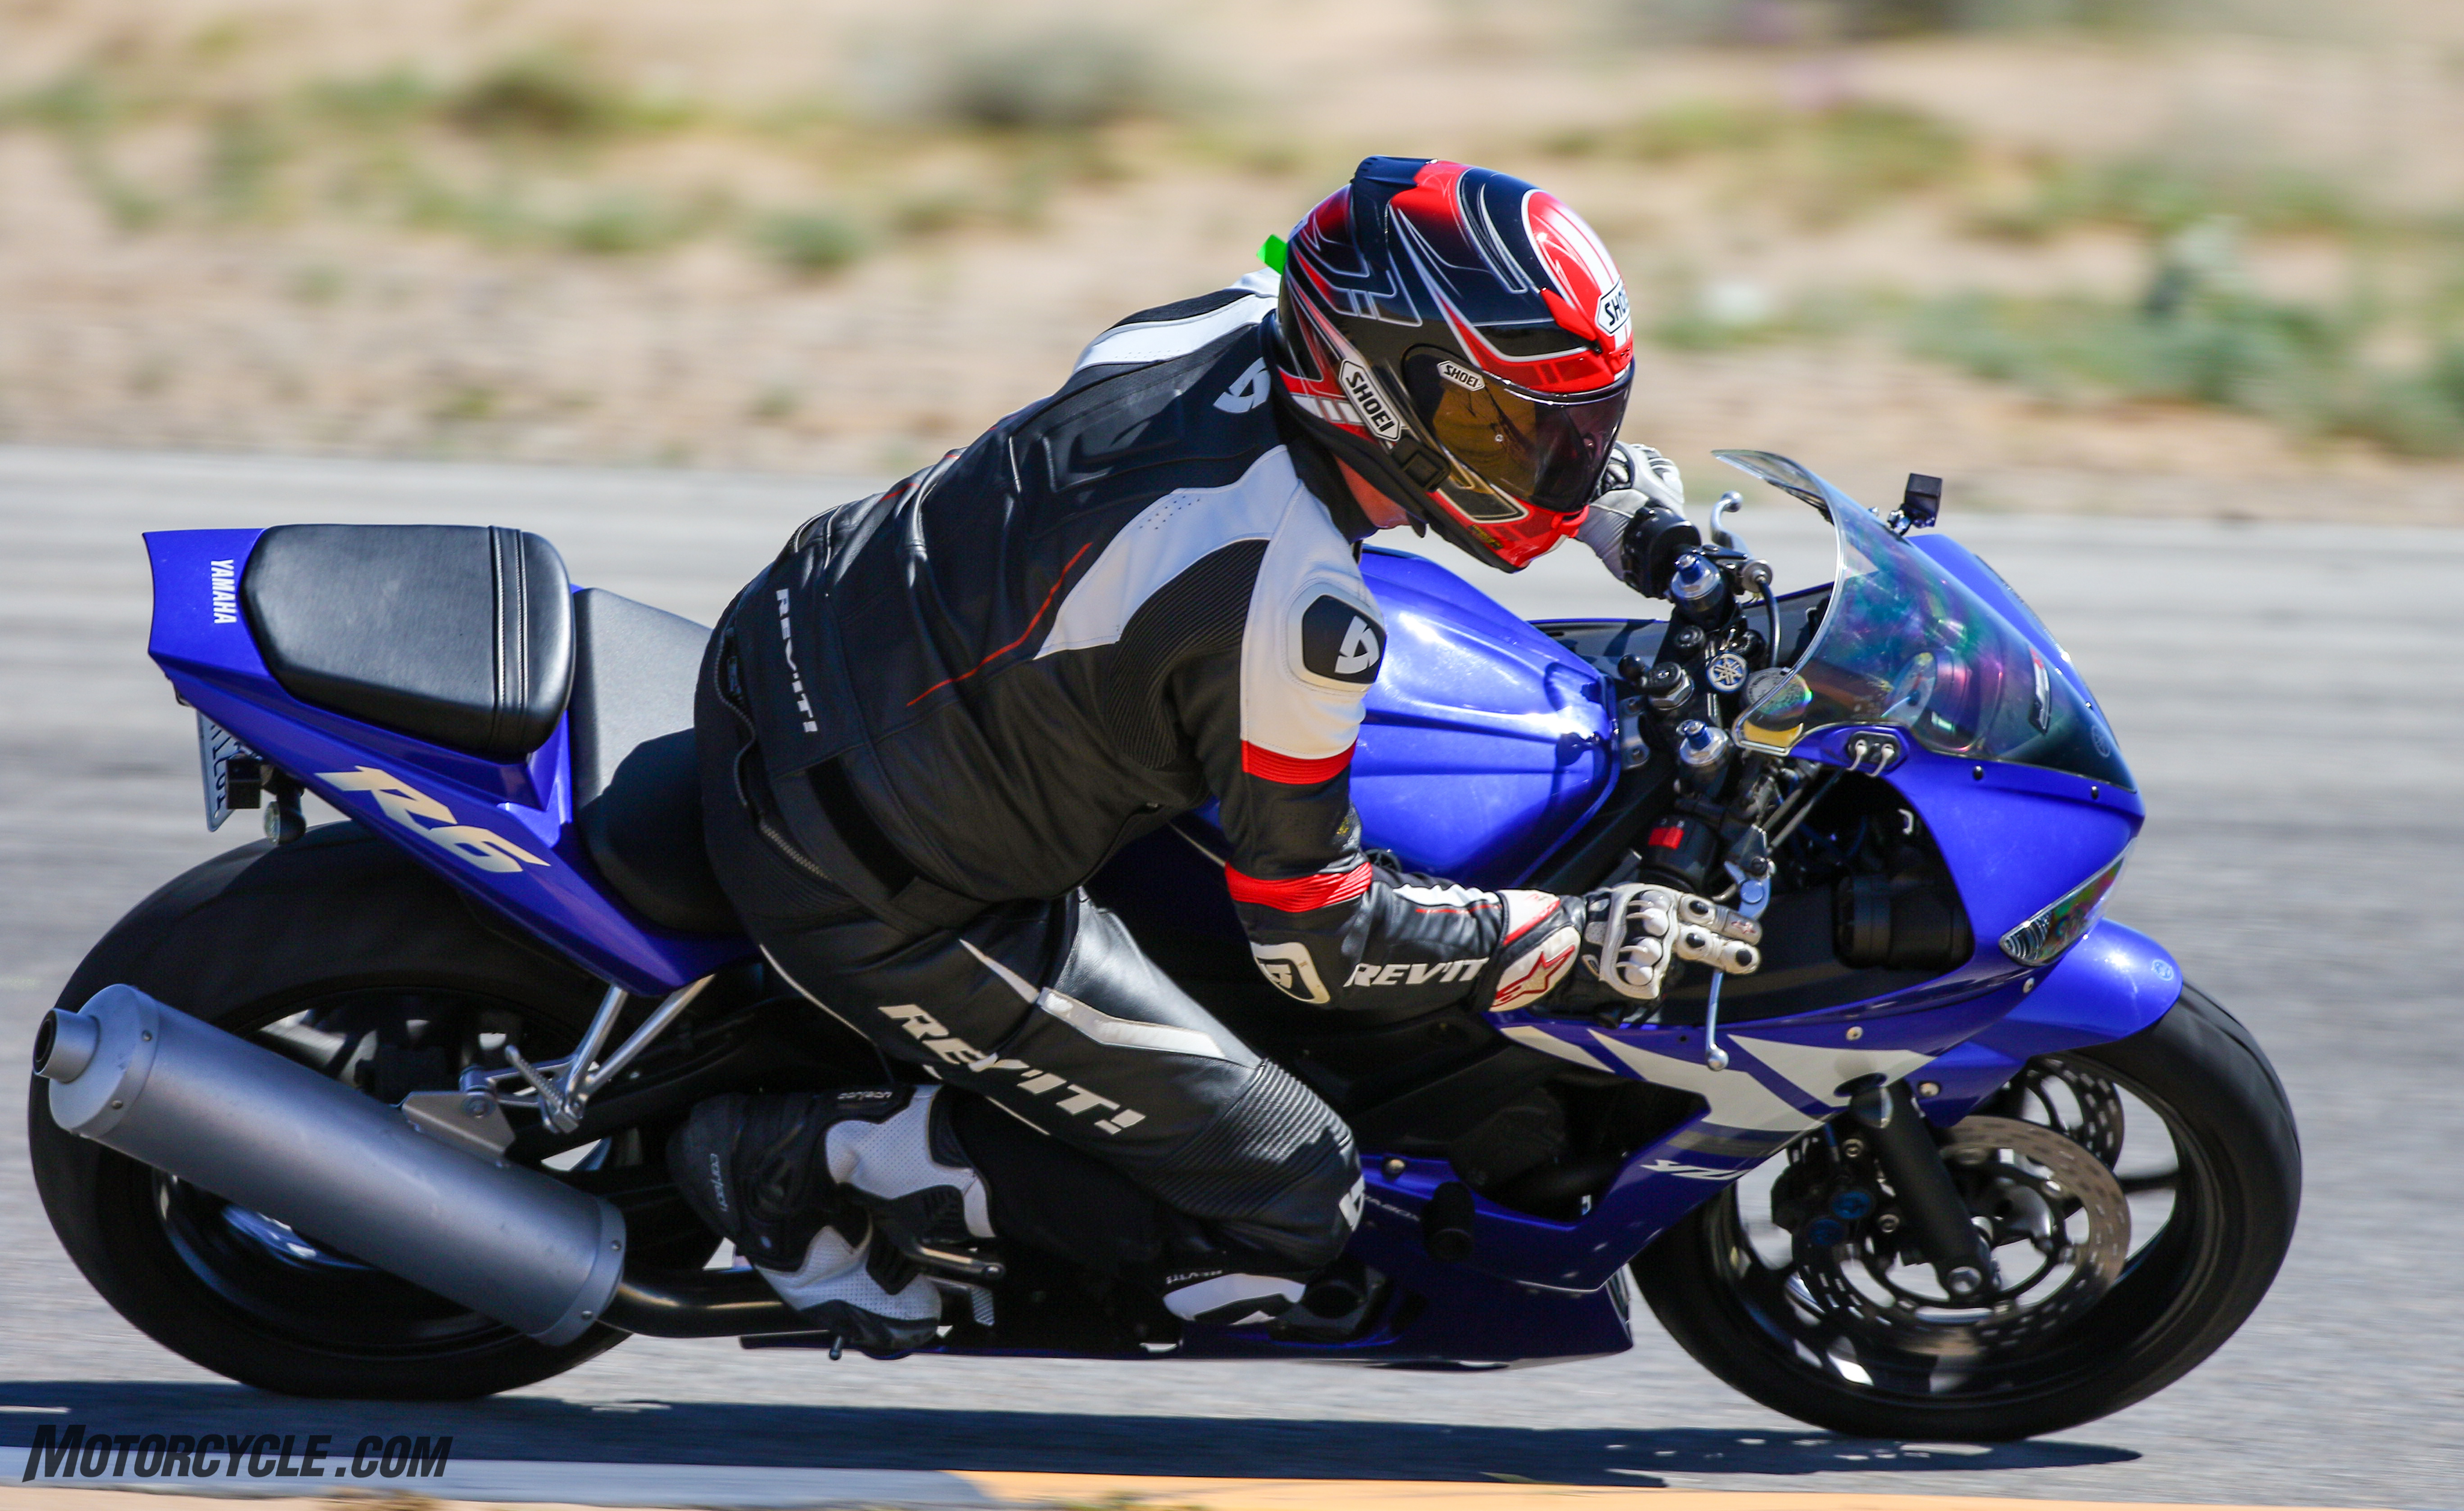 industry profile of motorcycle essay India gasoline scooter and motorcycle market by product  $ 1850 june 2018 the indian gasoline scooter and motorcycle market is projected to reach $424 billion by 2025,the growth of the market is majorly driven by the development of autonomous vehicles and increasing focus towards.